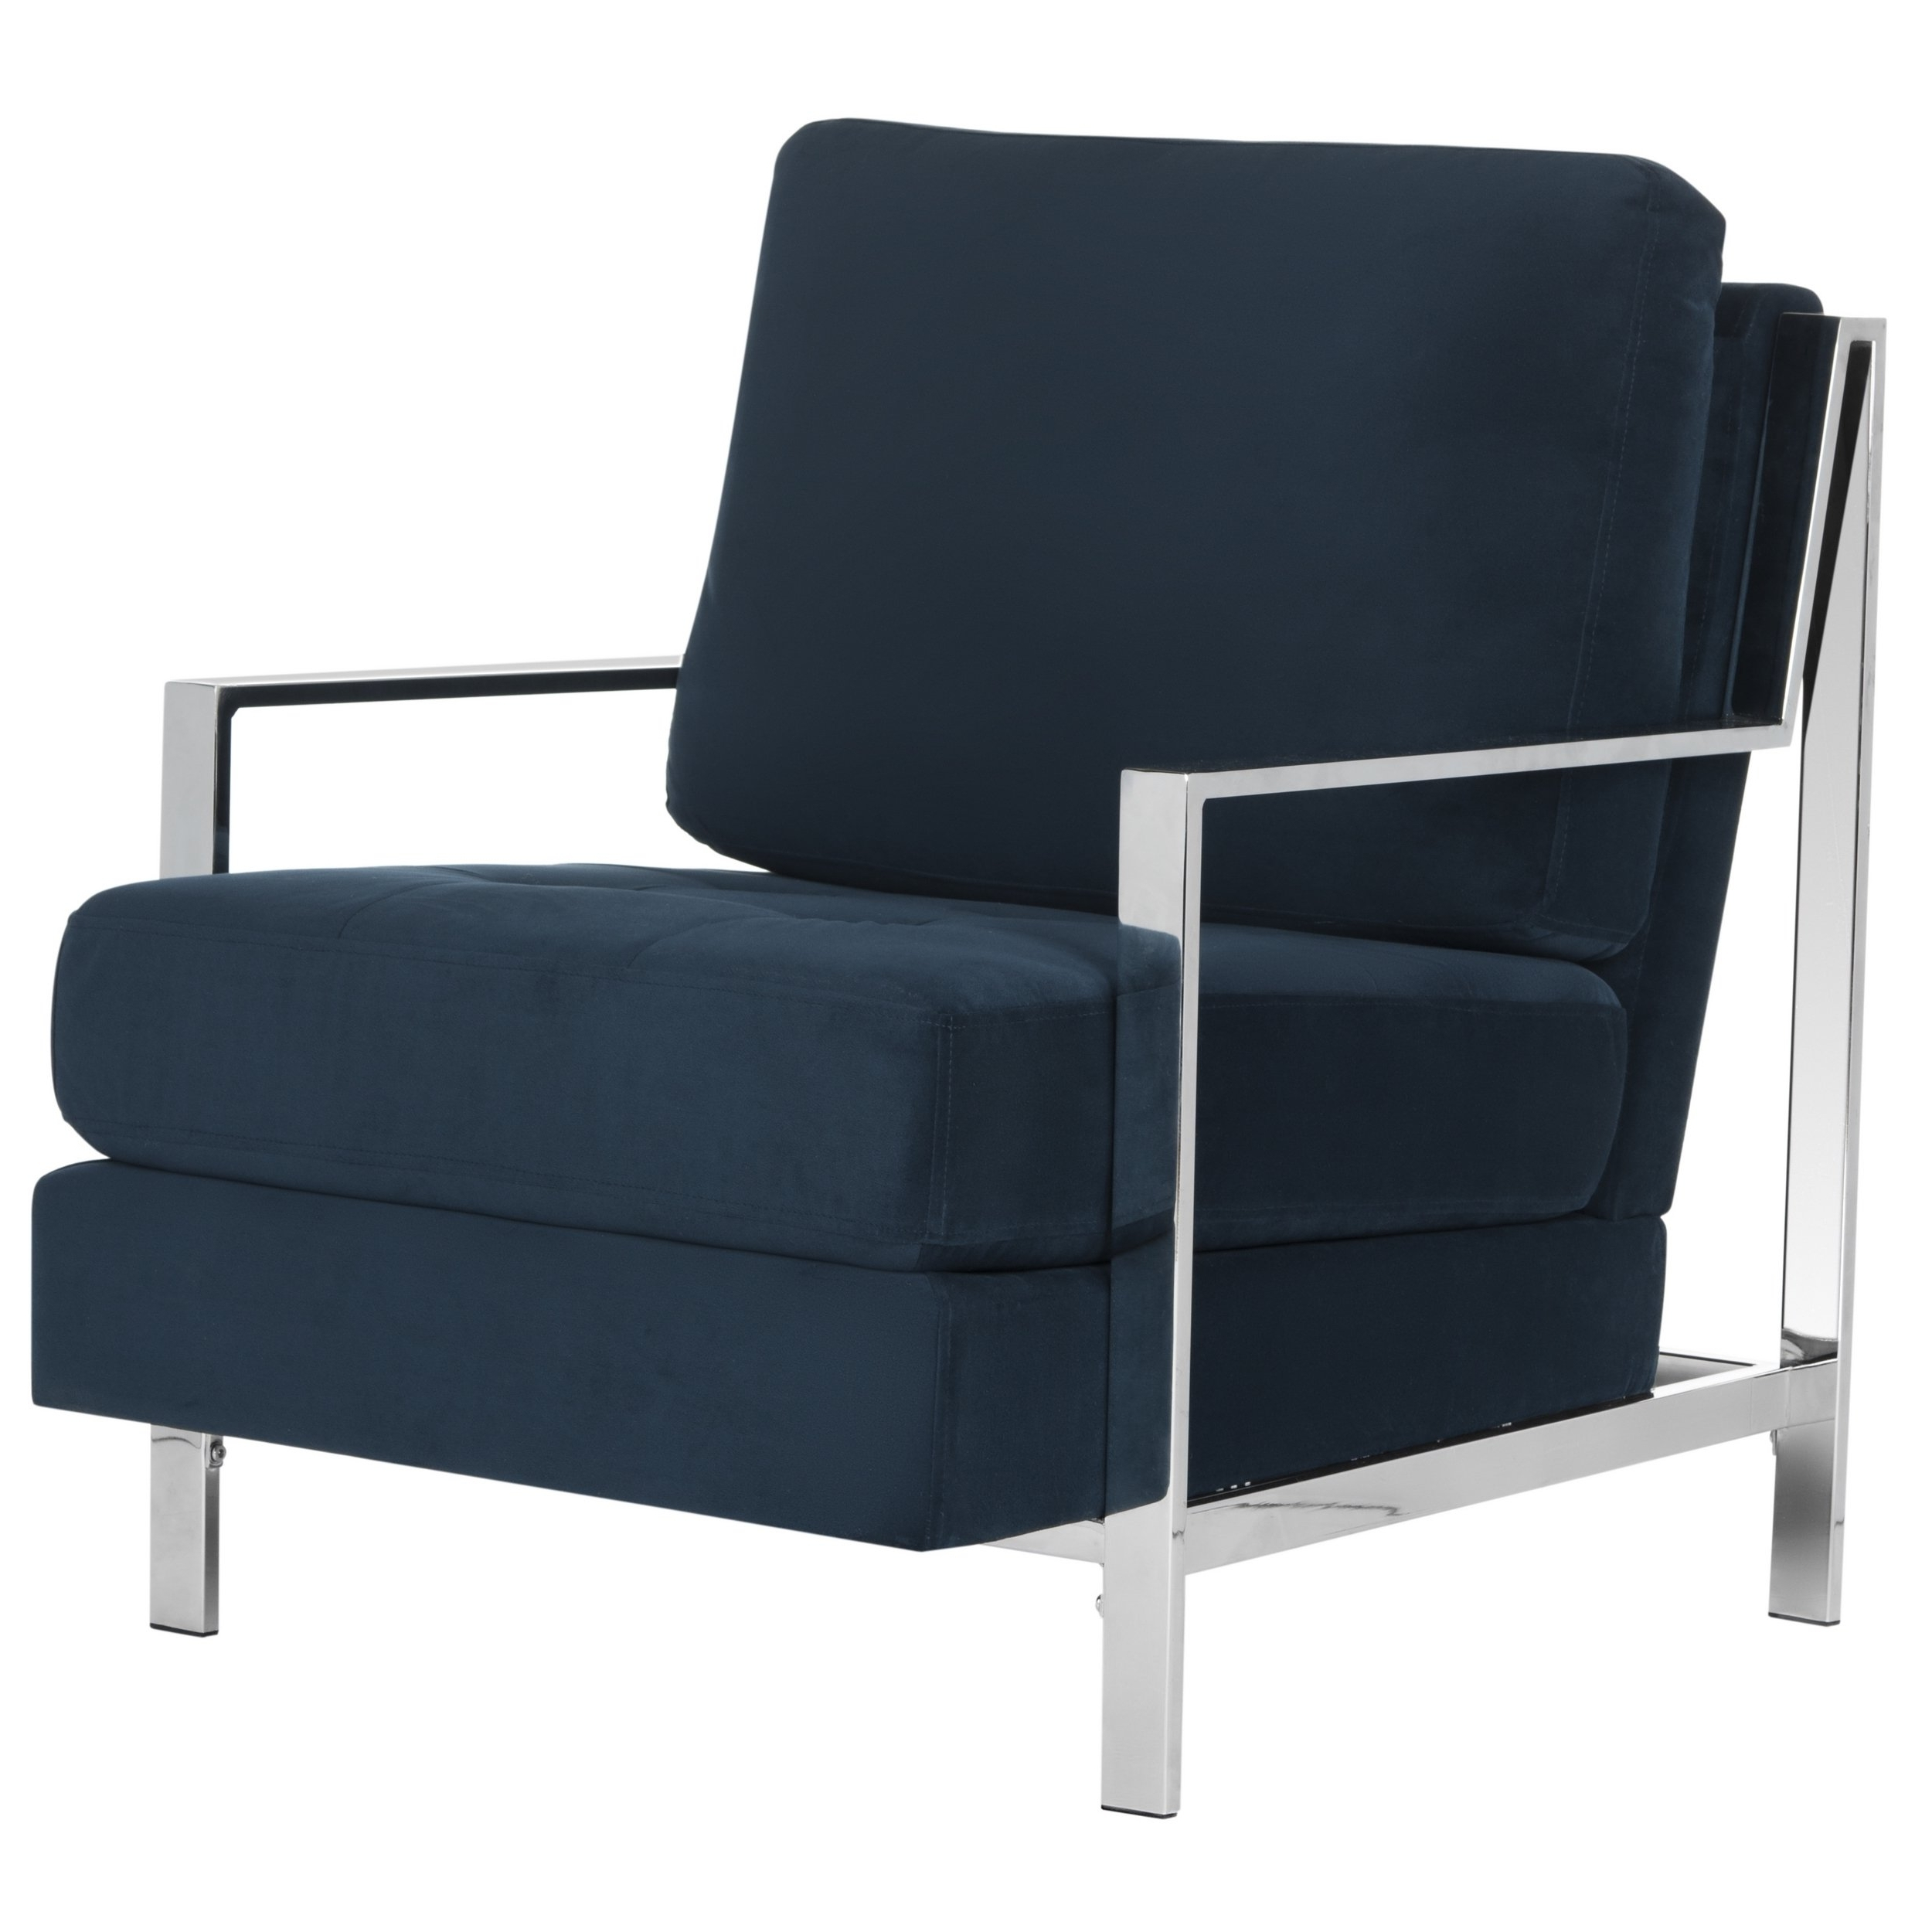 Walden Upholstered Arm Chairs Intended For Current Shop Mid Century Modern Glam Velvet Navy Blue Club Chair – Free (View 6 of 20)